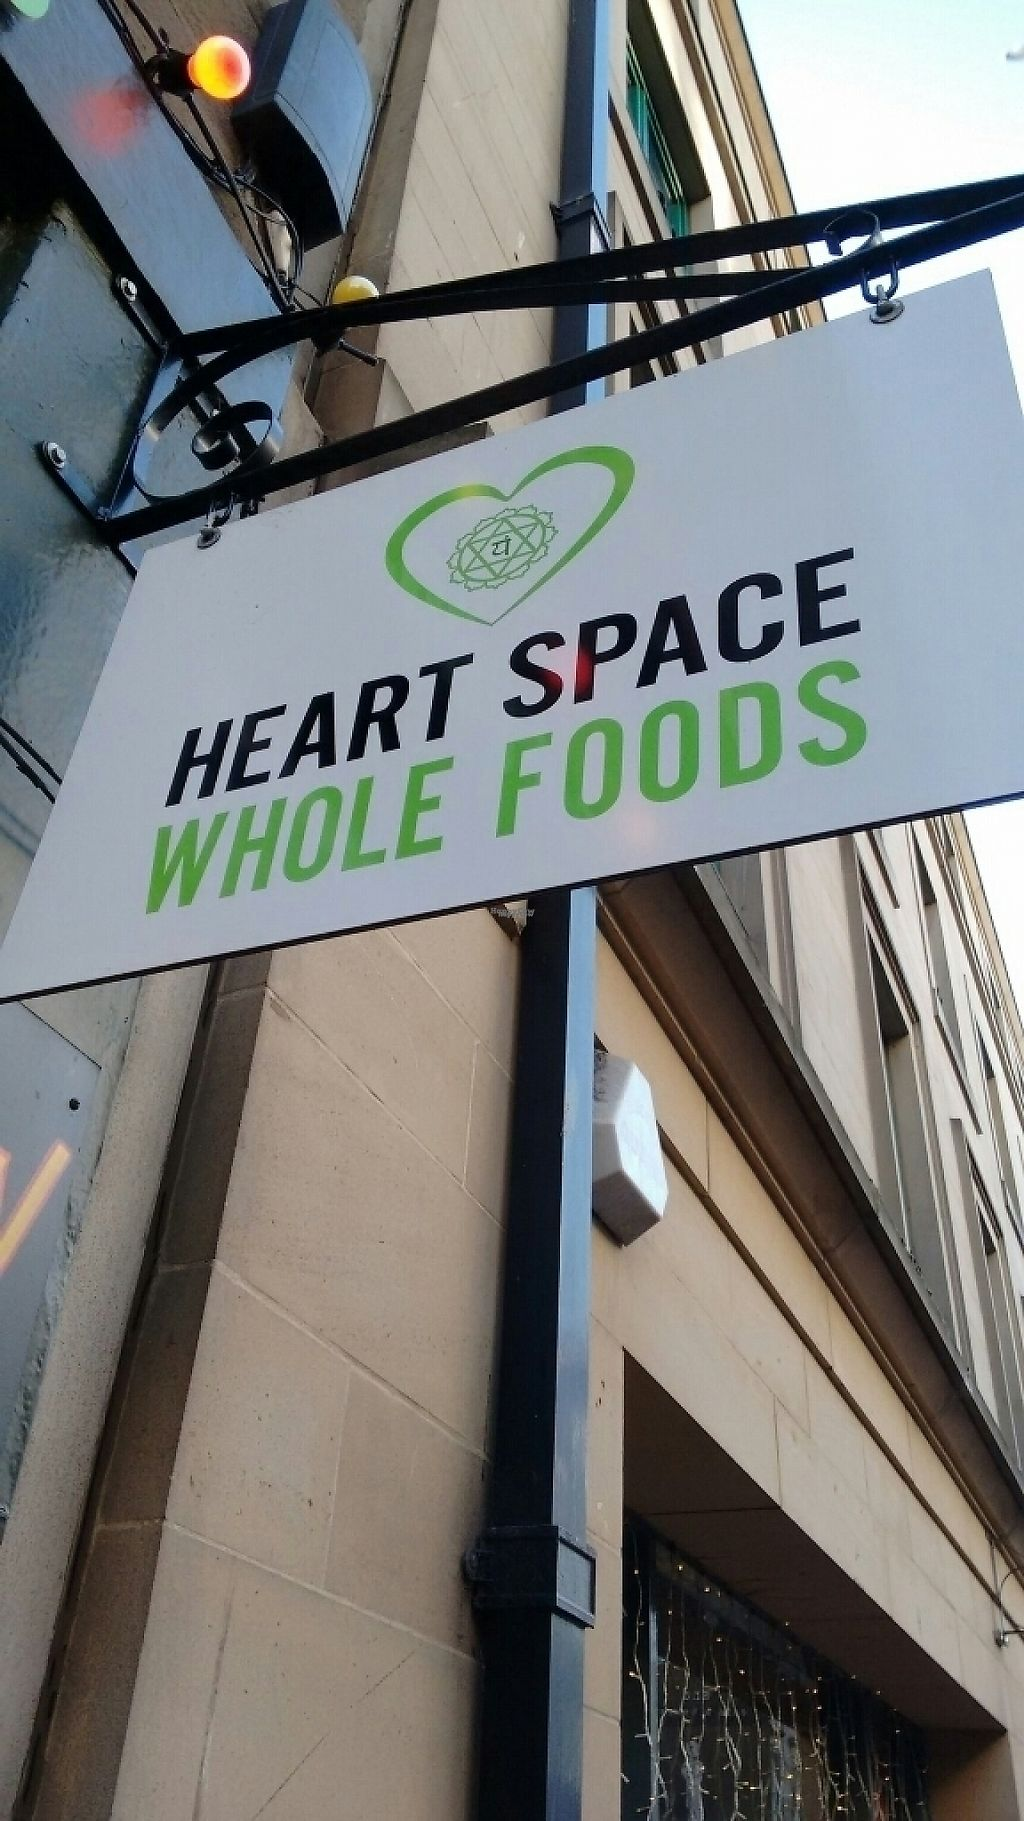 "Photo of Heart Space Whole Foods  by <a href=""/members/profile/craigmc"">craigmc</a> <br/>heart space <br/> November 21, 2016  - <a href='/contact/abuse/image/82997/192940'>Report</a>"